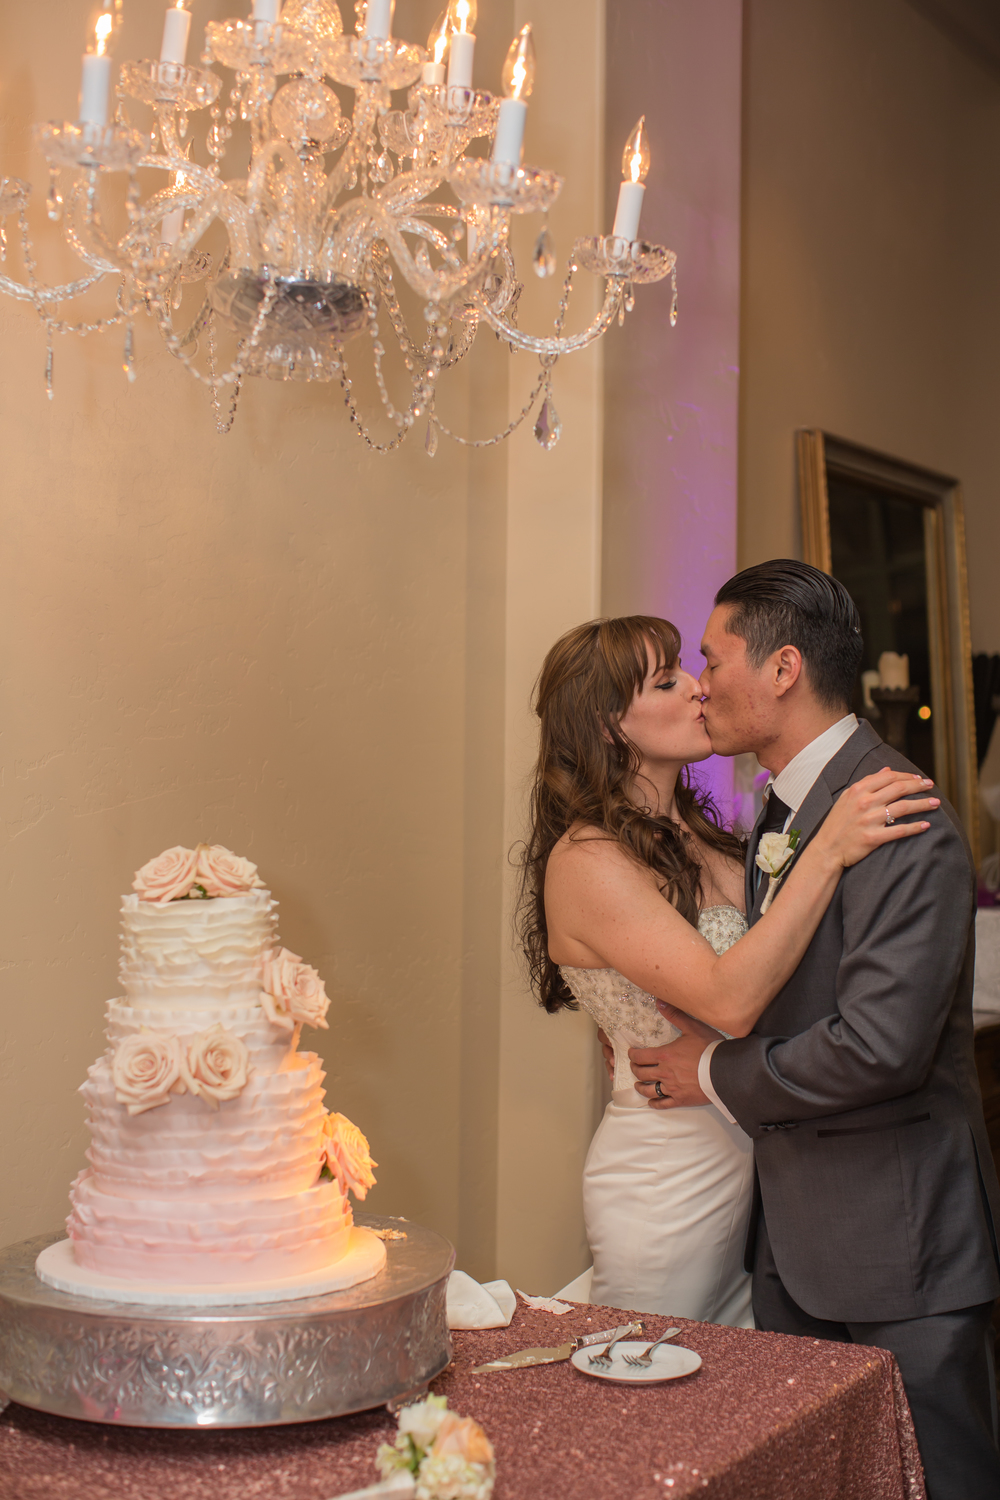 Ombre Cake and Sweet Kisses. Las Vegas Wedding at Siena Golf Club  |  Photography by Ella Gagiano  | Floral and Decor by Naakiti Floral  |  Las Wedding Planner Andrea Eppolito